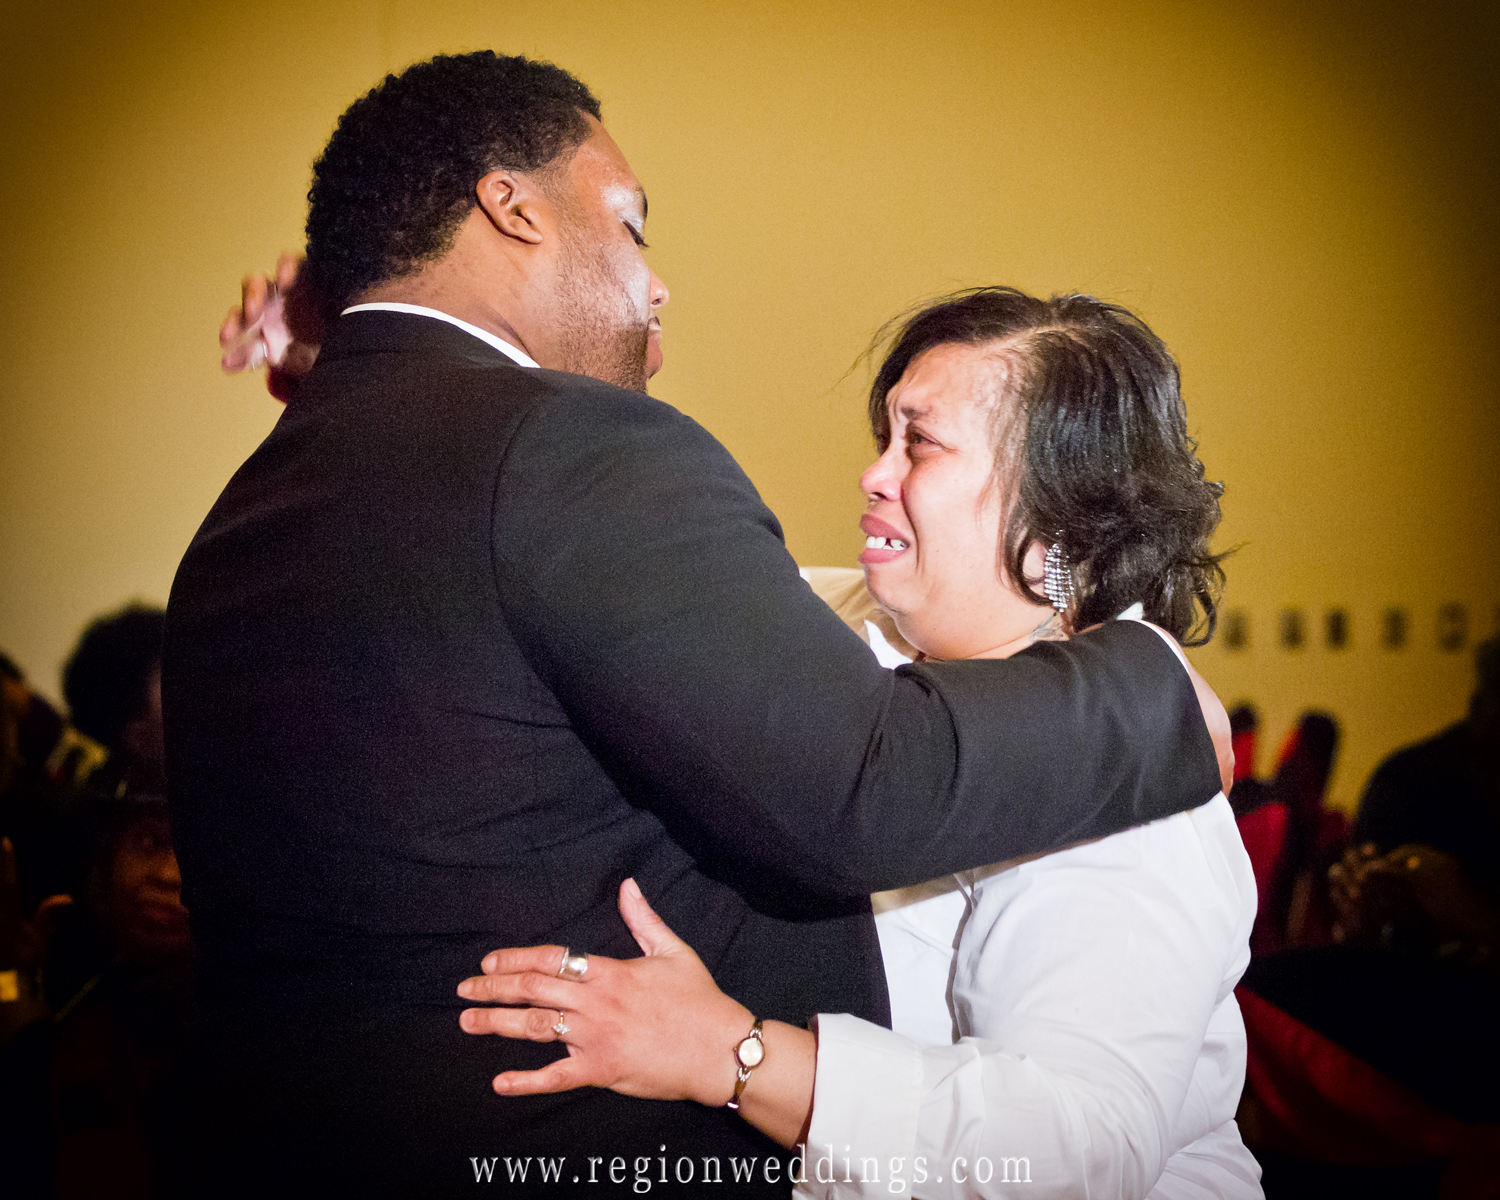 Mom dances with her son at a wedding reception at Centennial Park in Munster, Indiana.